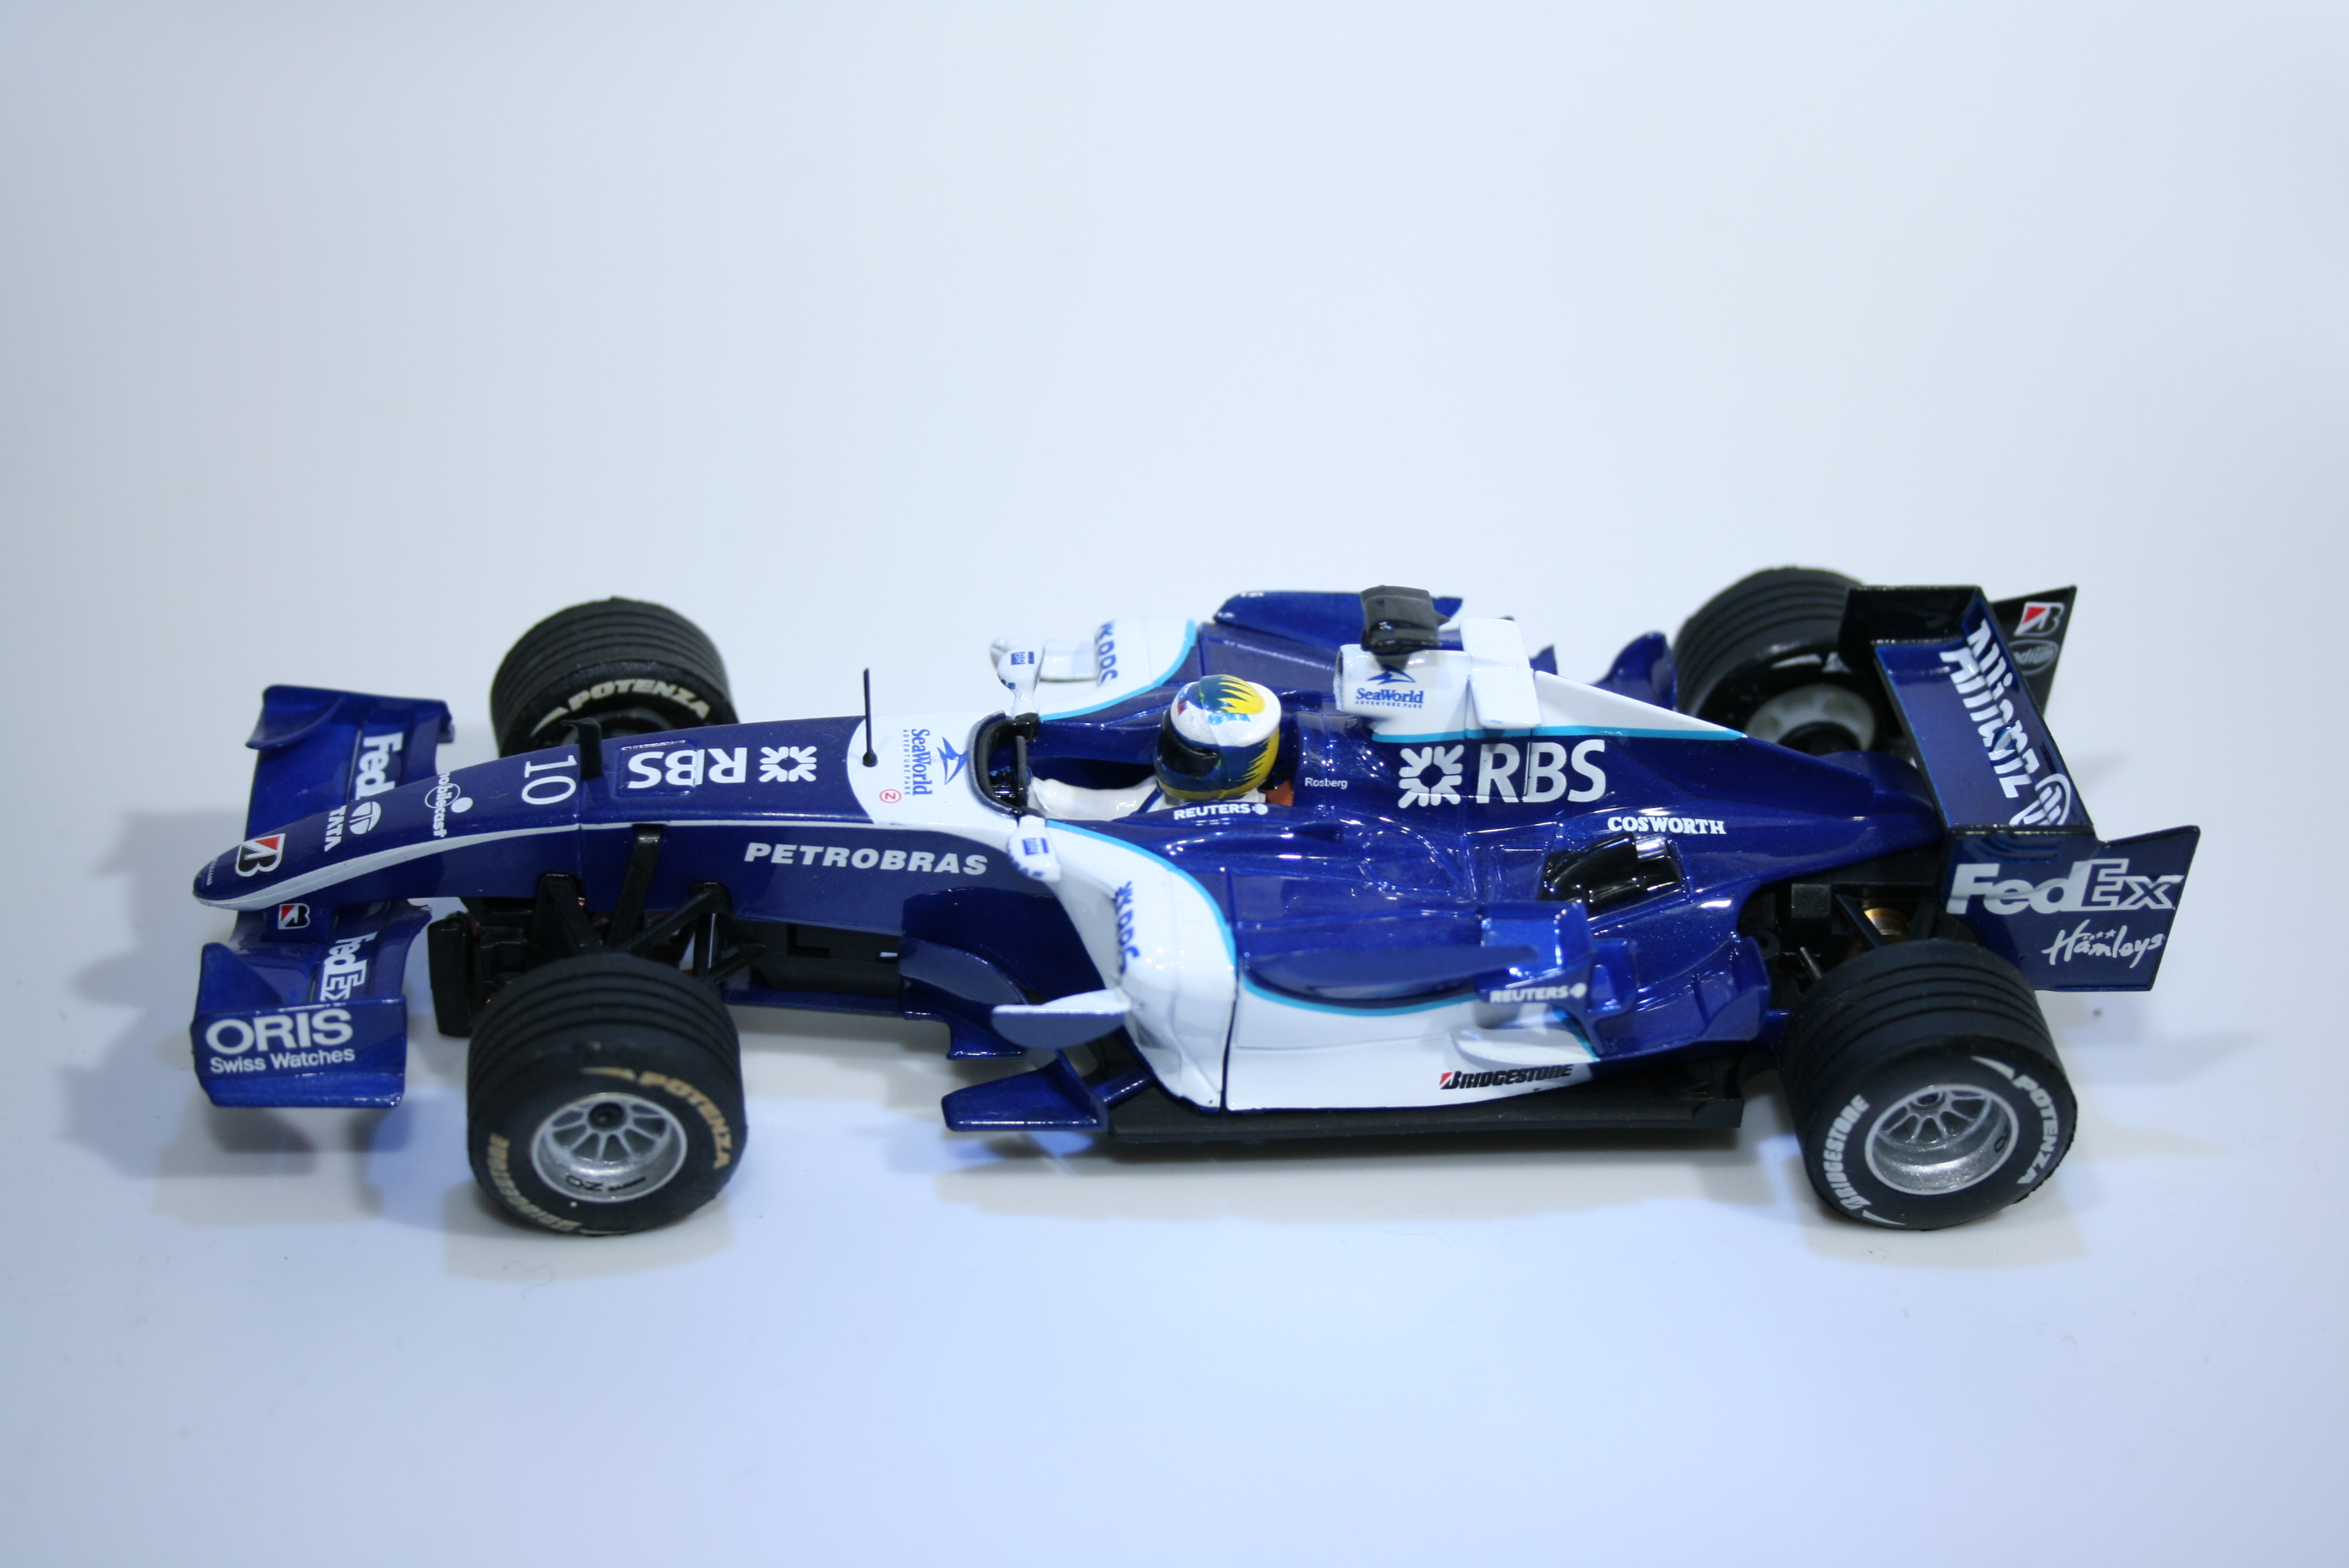 343 Williams FW28 2006 N Rosberg Scx 62450 2007 Boxed